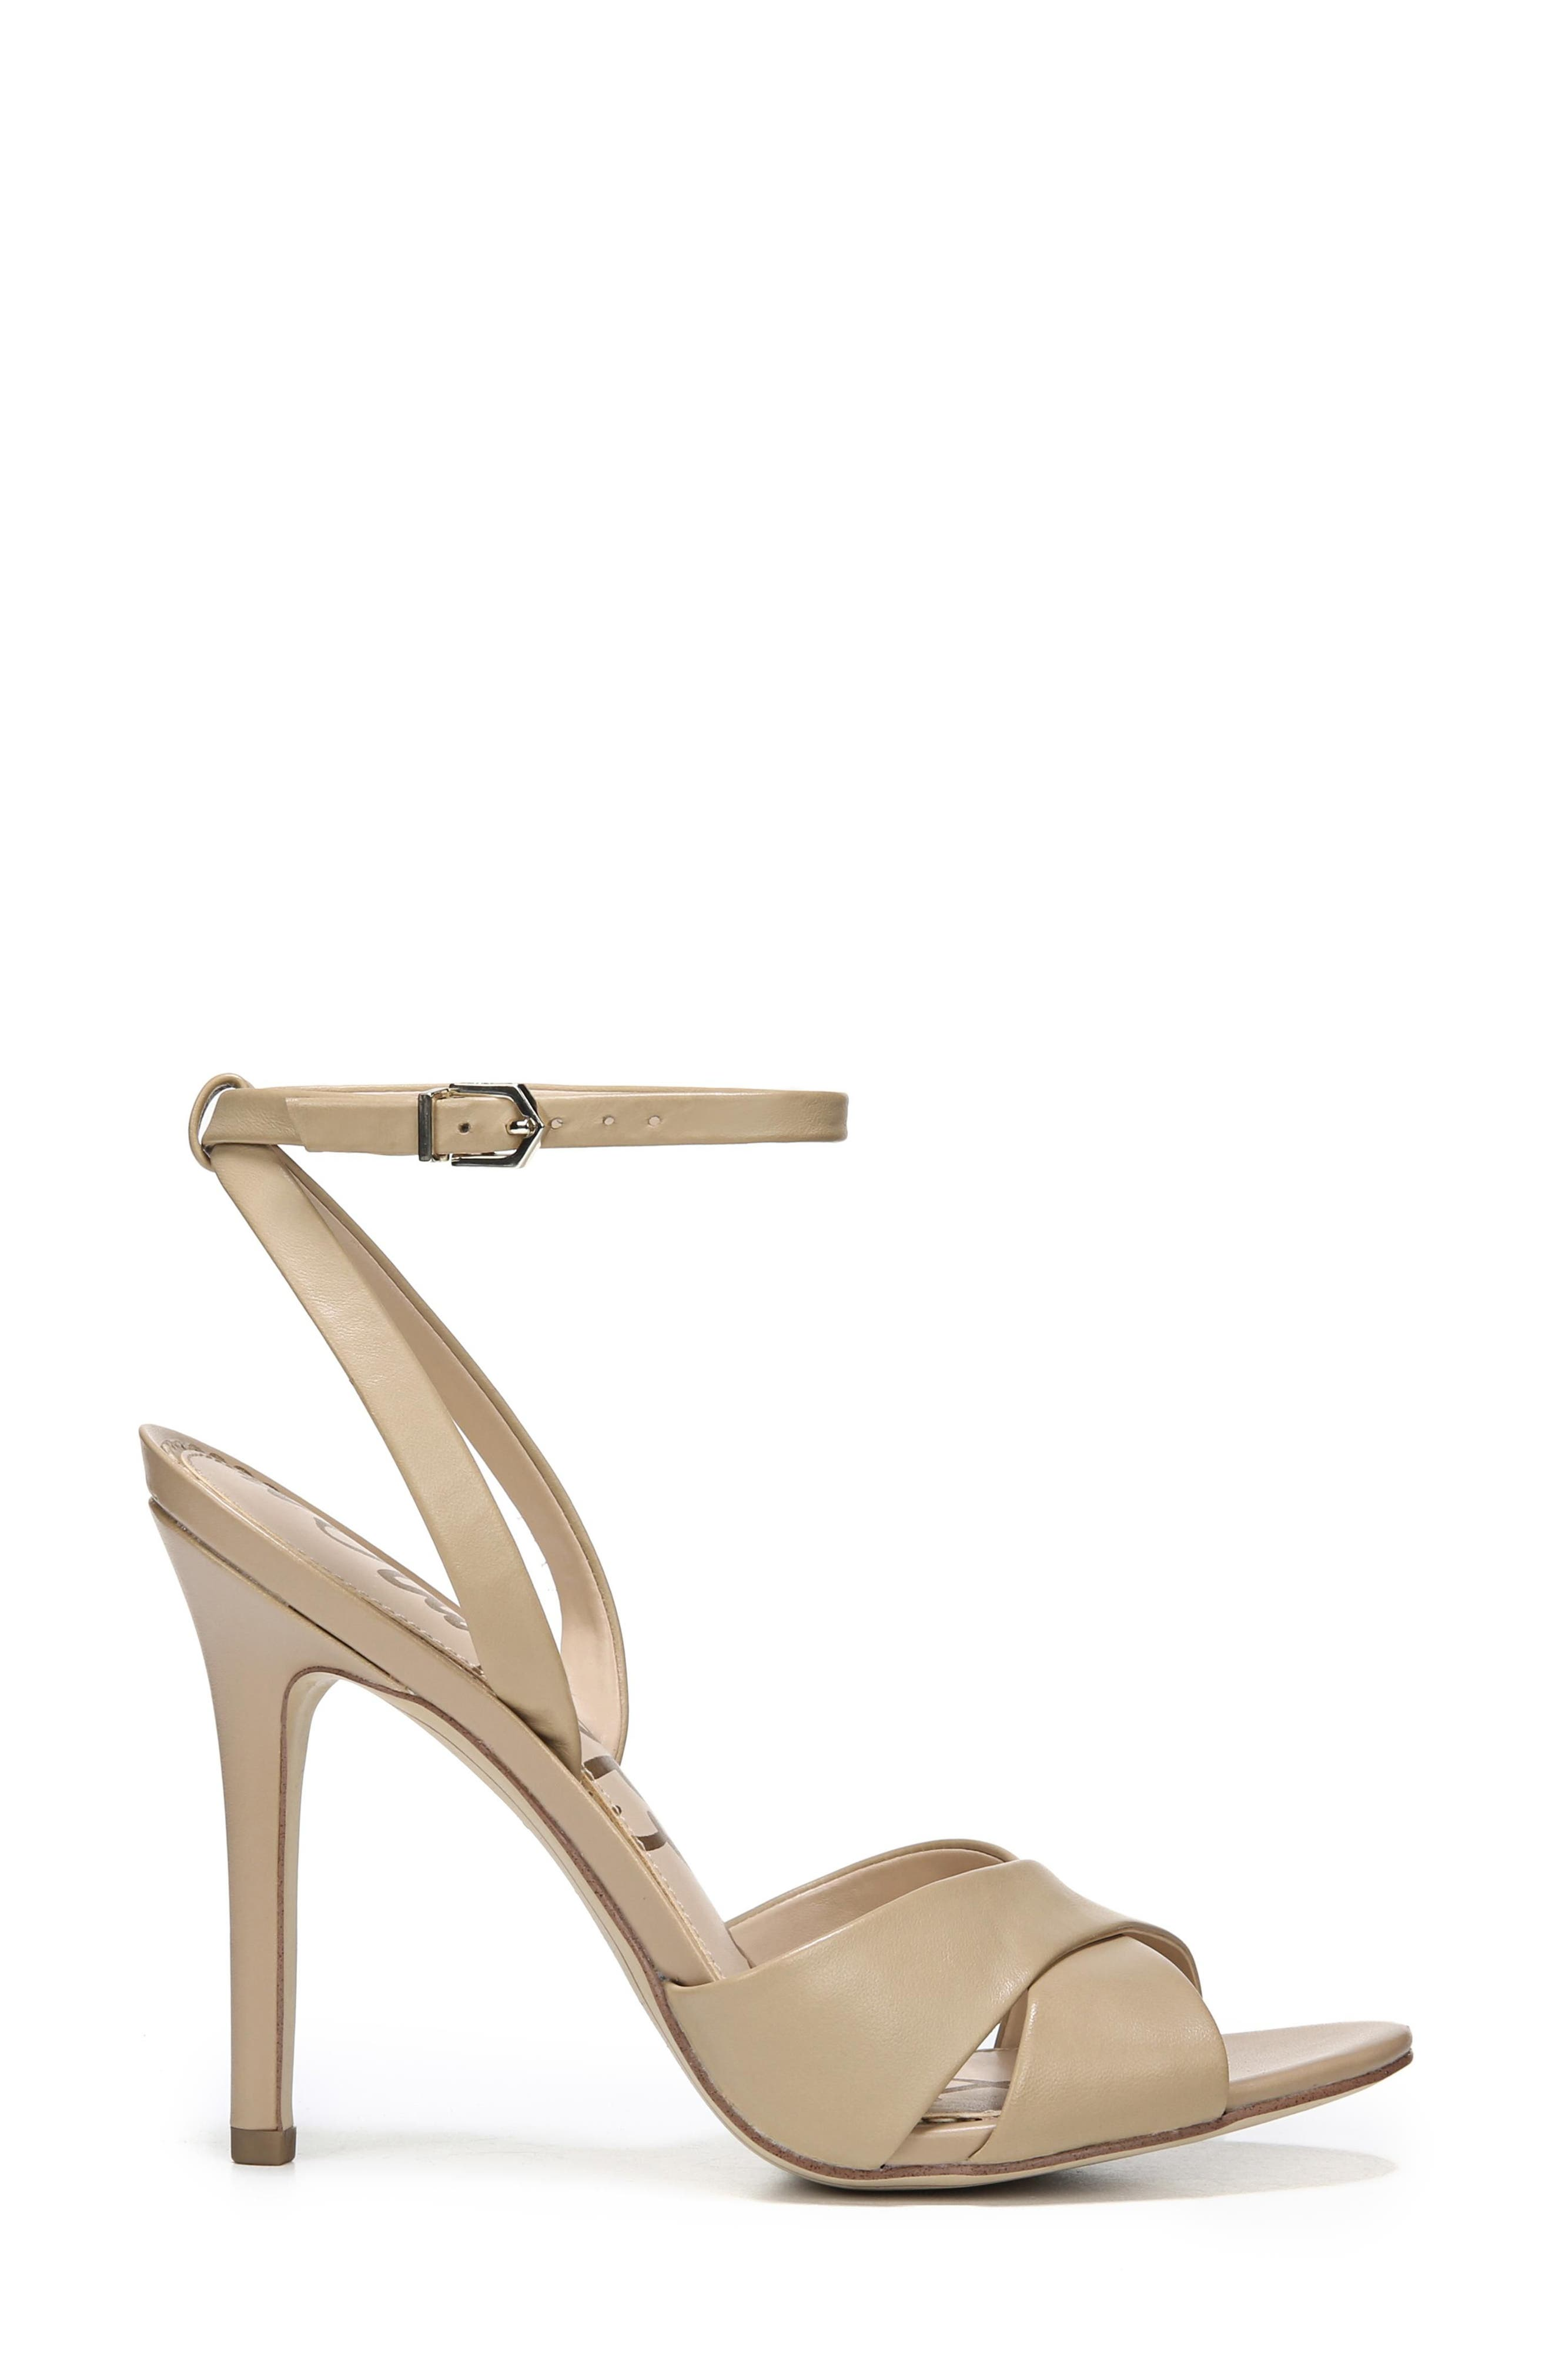 Aly Ankle Strap Sandal,                             Alternate thumbnail 3, color,                             Classic Nude Leather